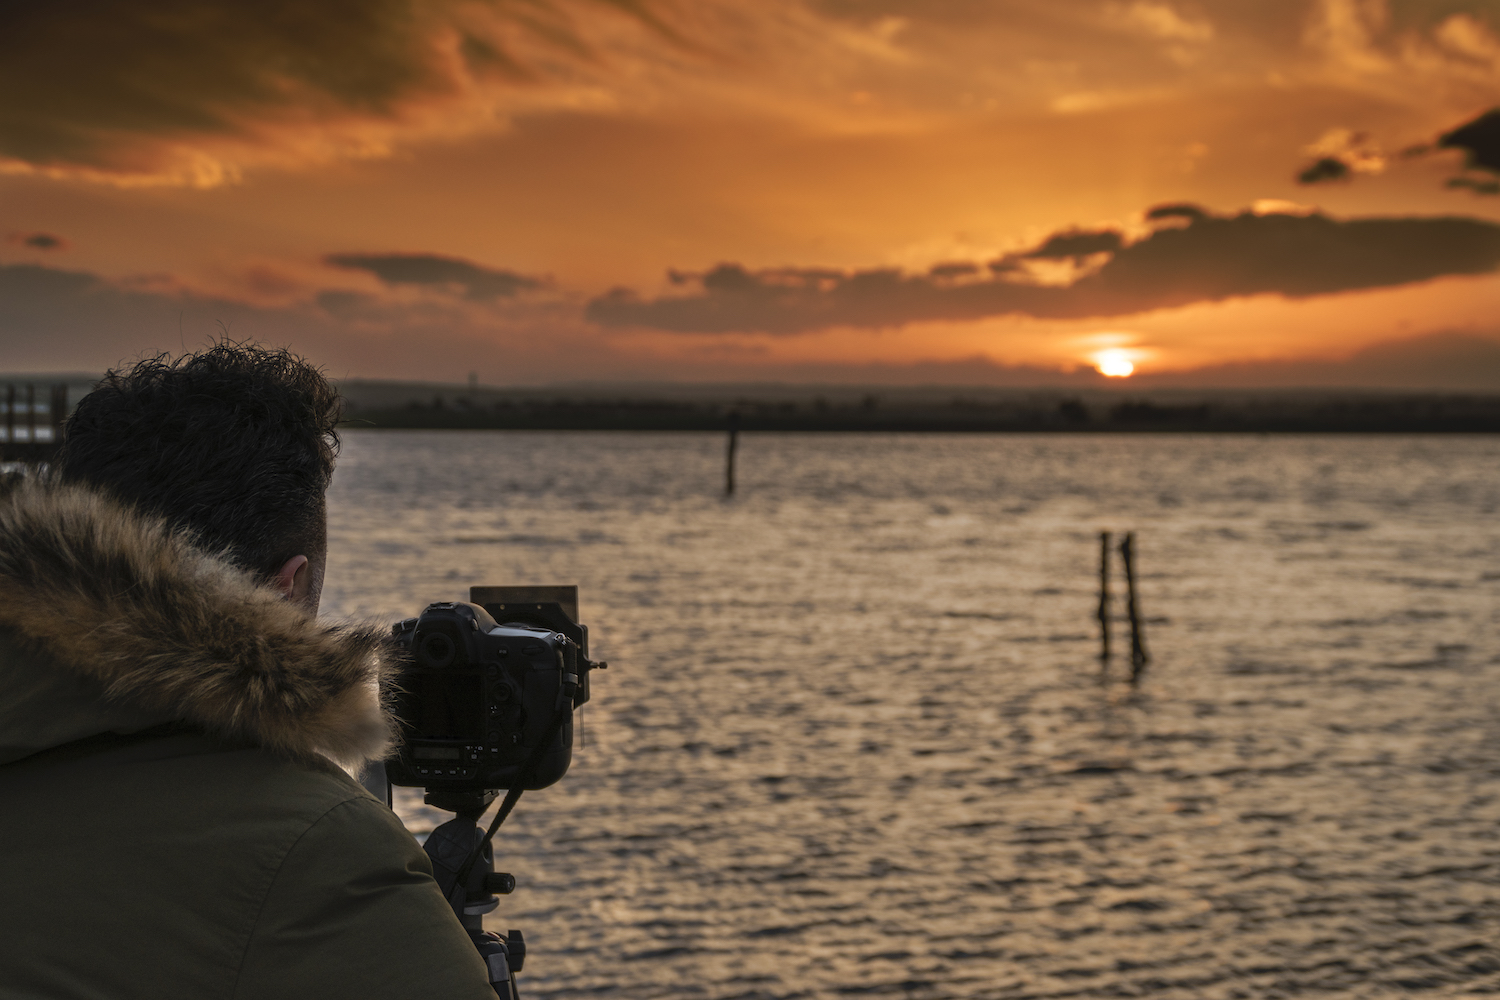 A photographer takes pictures at sunset with an ND filter